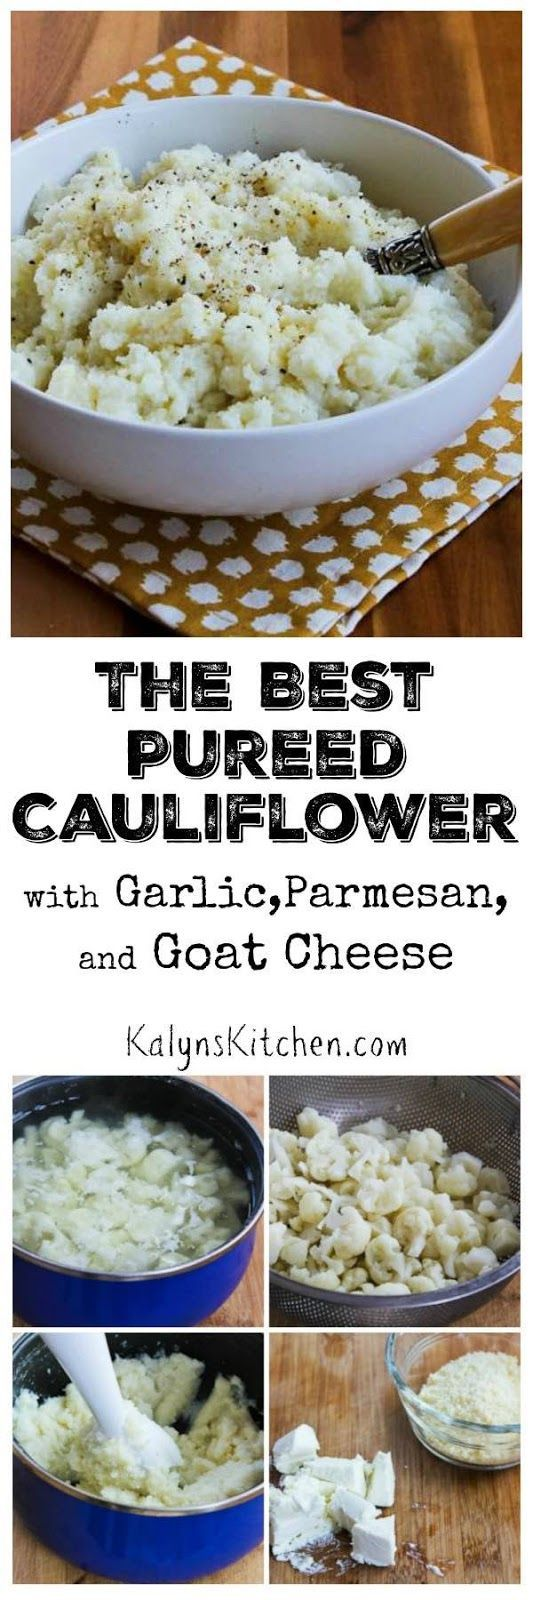 The Best Pureed Cauliflower with Garlic, Parmesan, and Goat Cheese is my favorite cauliflower mash recipe that I've been making for years! Plus this post has 10 More Yummy Cauliflower Recipes!  [found on KalynsKitchen.com]